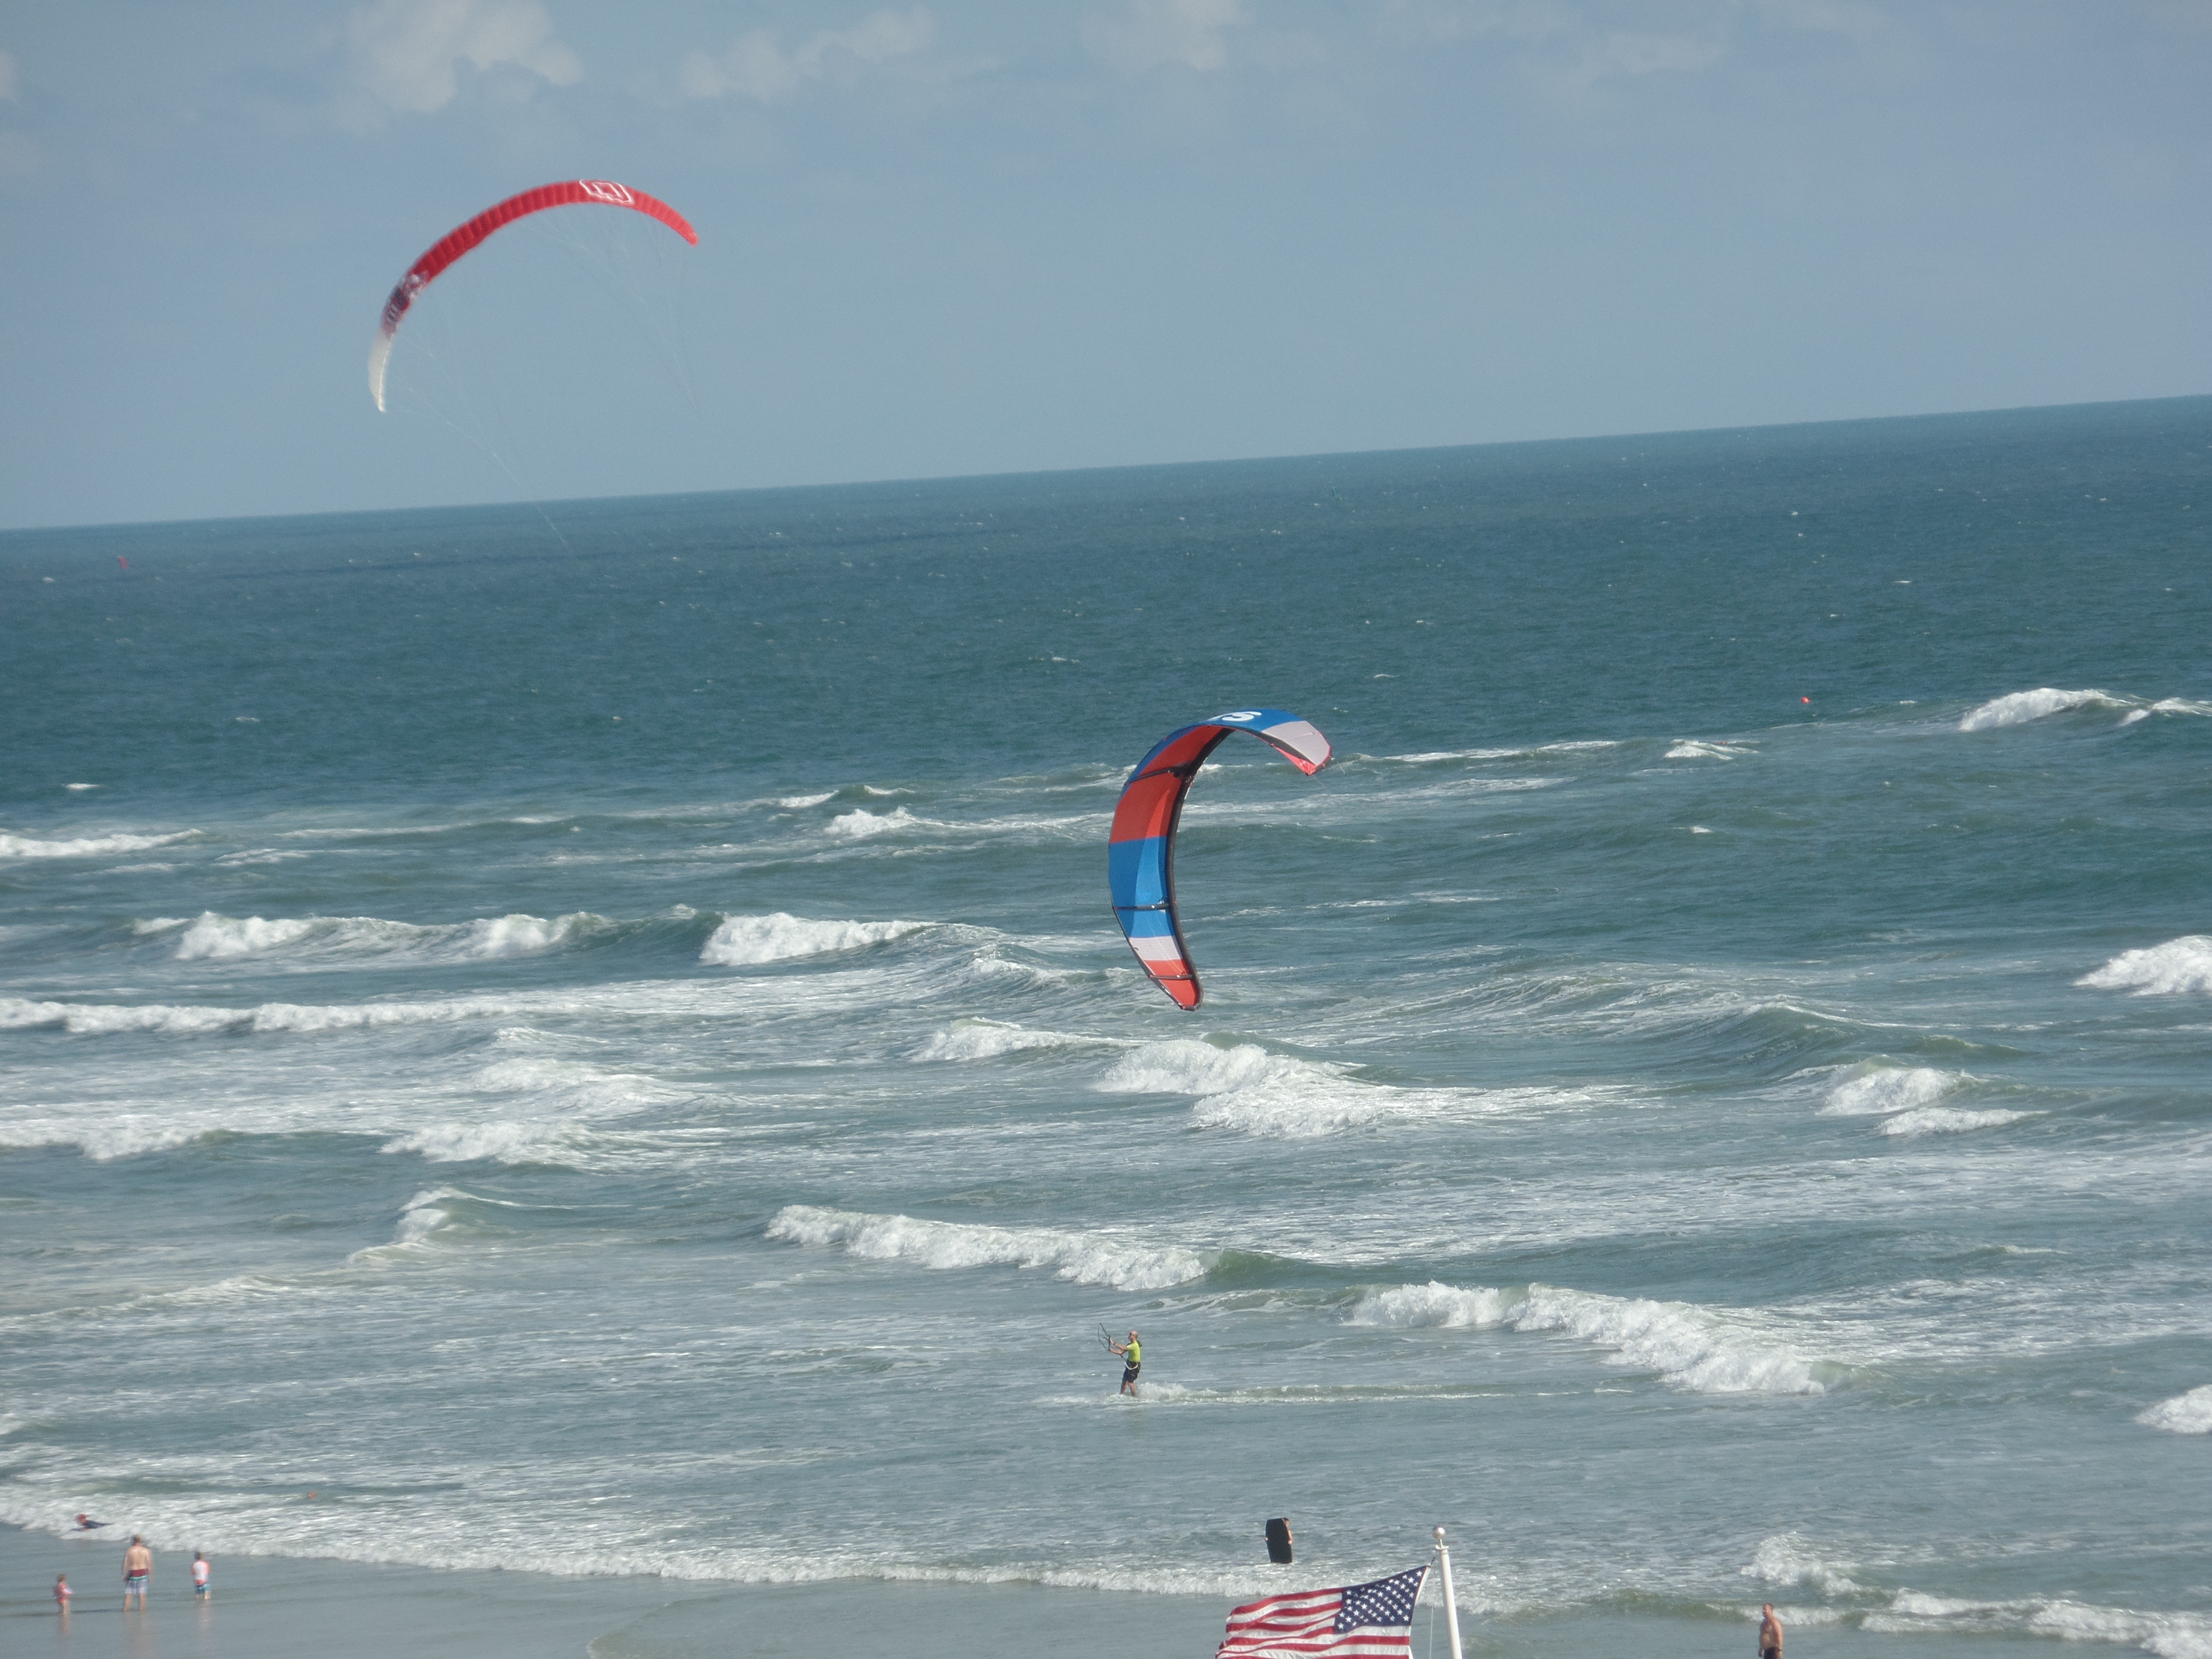 join the summer beach fun in New Smyrna Beach with kite surfing